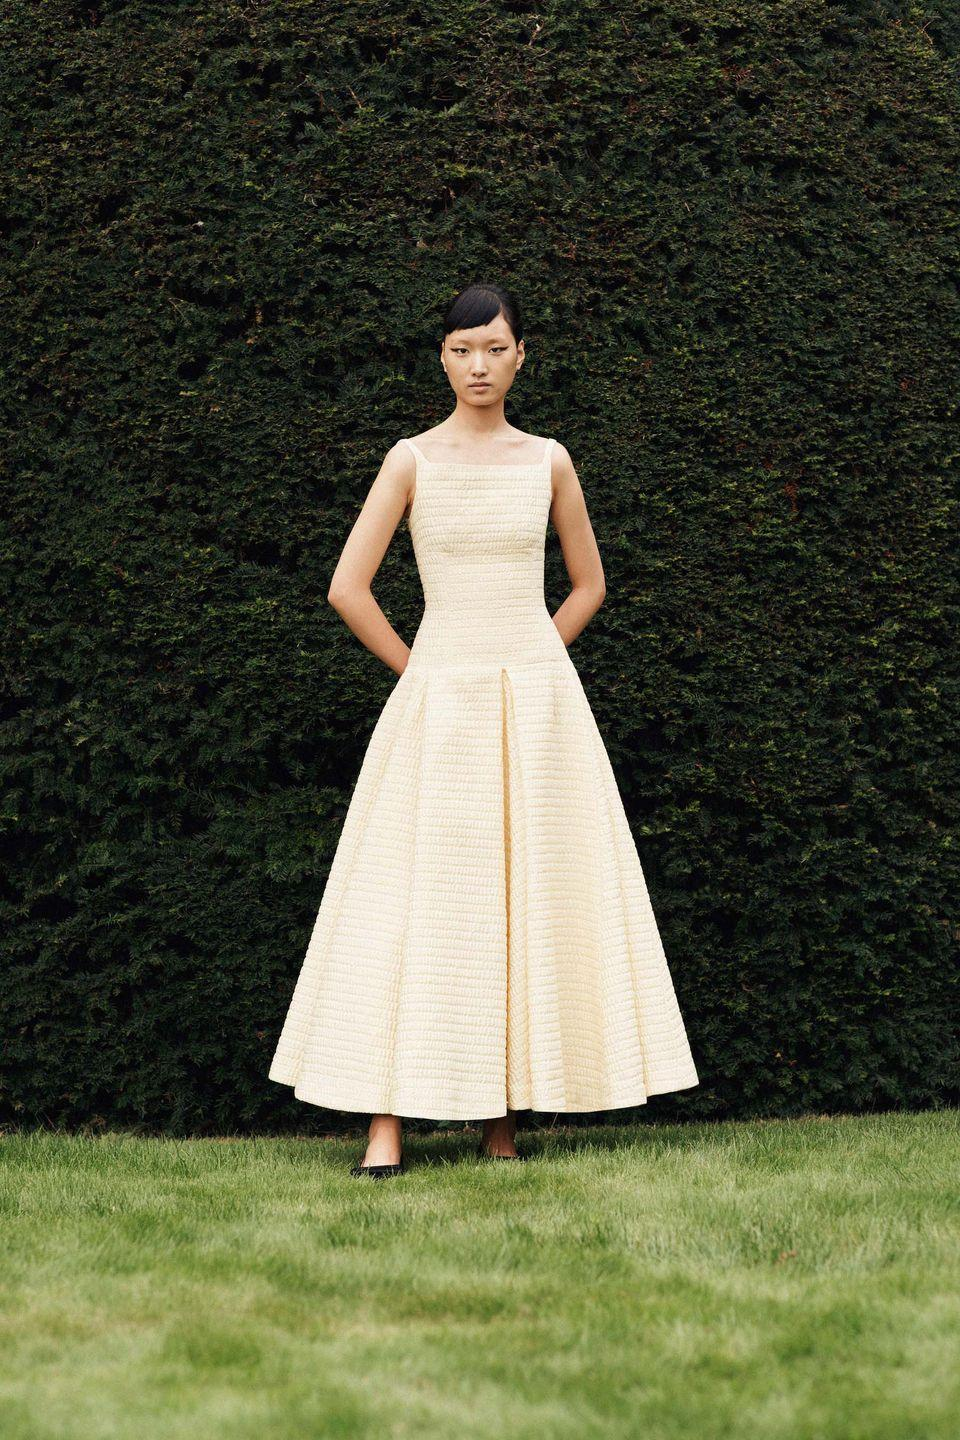 """<p>For the new summer season, Emilia Wickstead was inspired by the 1961 movie Last Year at Marienbad, which tells the story of an unnamed sophisticate who attempts to persuade a similarly unnamed woman that they have not only previously met, but that they were also romantically involved and had planned to elope together. The woman recalls no such encounter and so begins a<br>sensual and philosophical examination of the uncertainty of truth.</p><p>""""Strikingly composed and beautifully shot in CinemaScope, Last Year at Marienbad hypnotically merges chronology to blur the boundaries of reality and fantasy, the past and the present,"""" the brand explains. """"These themes and juxtapositions are woven into the spring/summer 2022 collection. A melding of old-world and modern proportions is at play.""""</p>"""